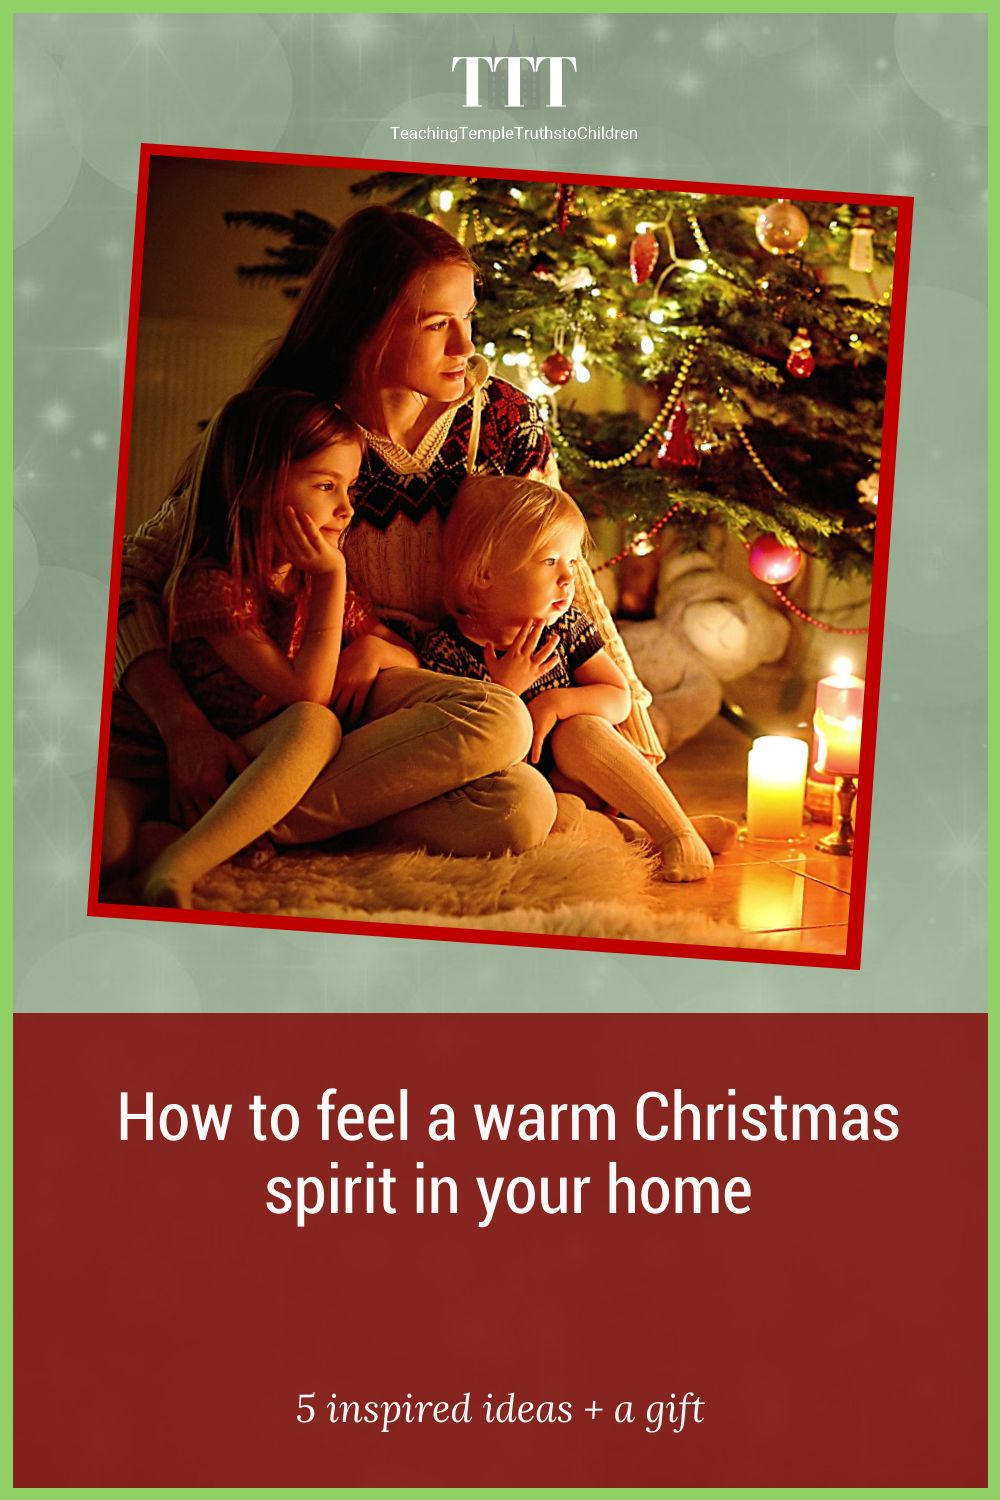 How to have the warm spirit of Christmas in your home